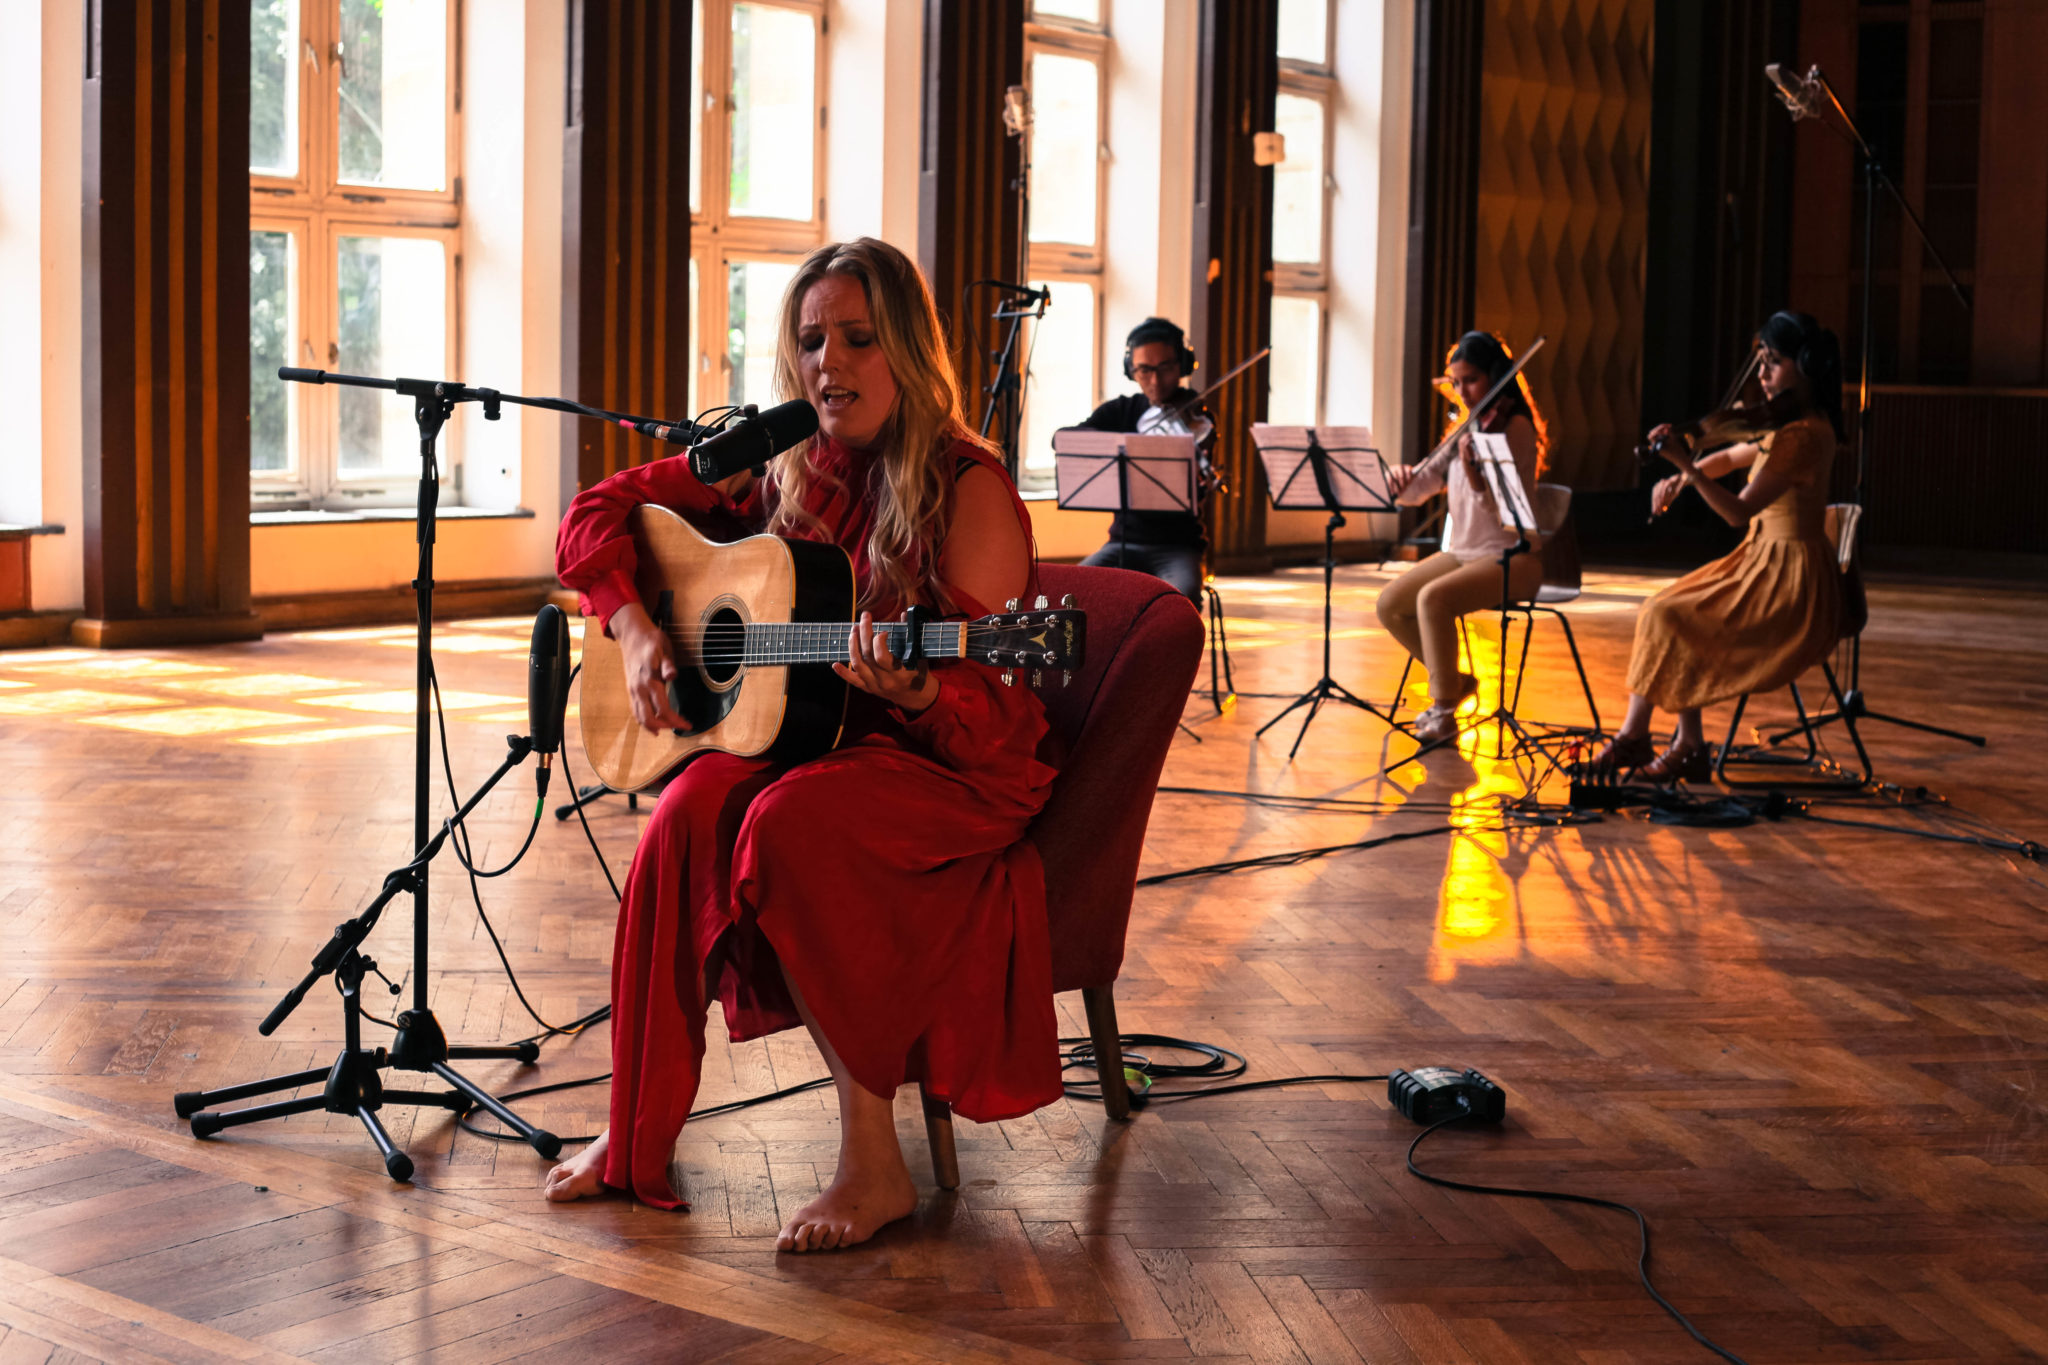 Singer, Composer & Producer Cecilie Sadolin Performs Live For Studio Sessions